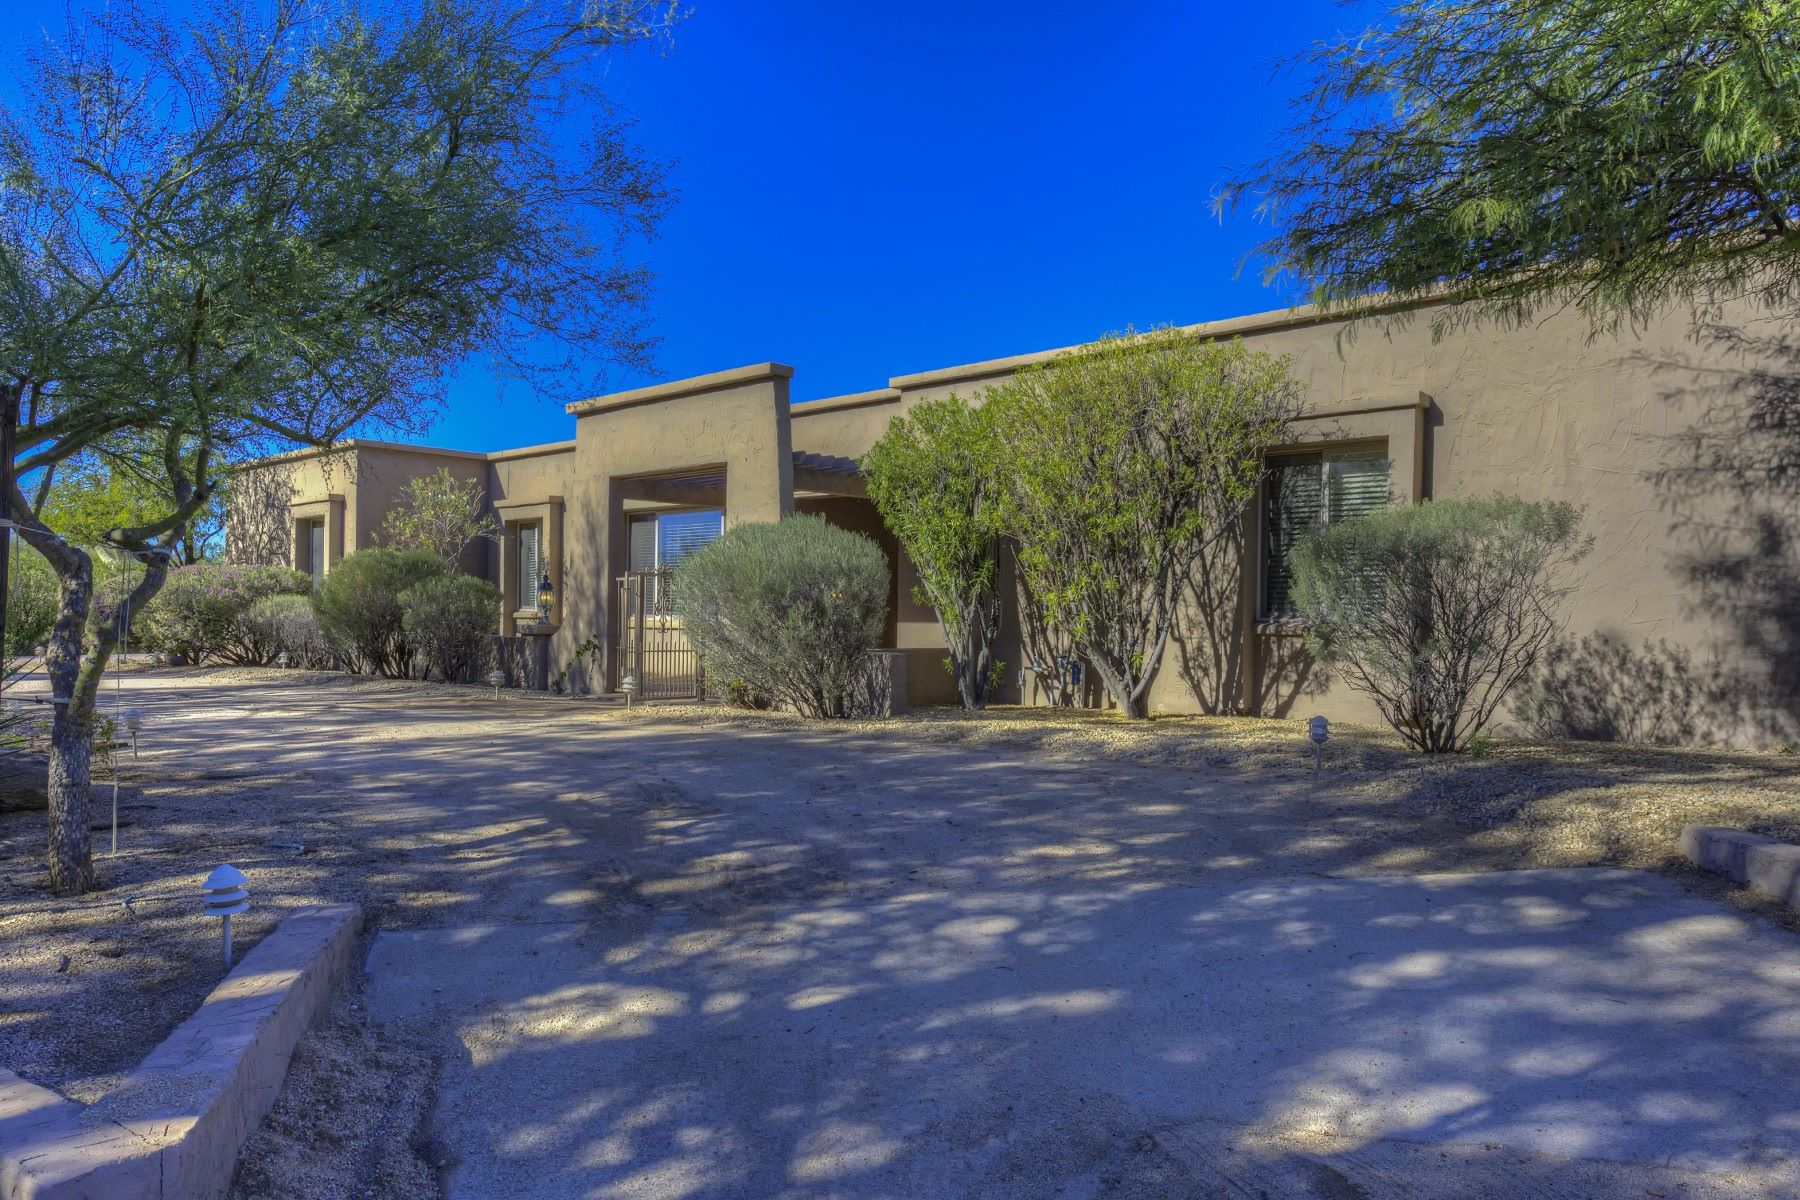 Villa per Vendita alle ore Charming home in the gated subdivision of Pinnacle Peak Estates 2 8028 E Via De Luna Dr Scottsdale, Arizona, 85261 Stati Uniti